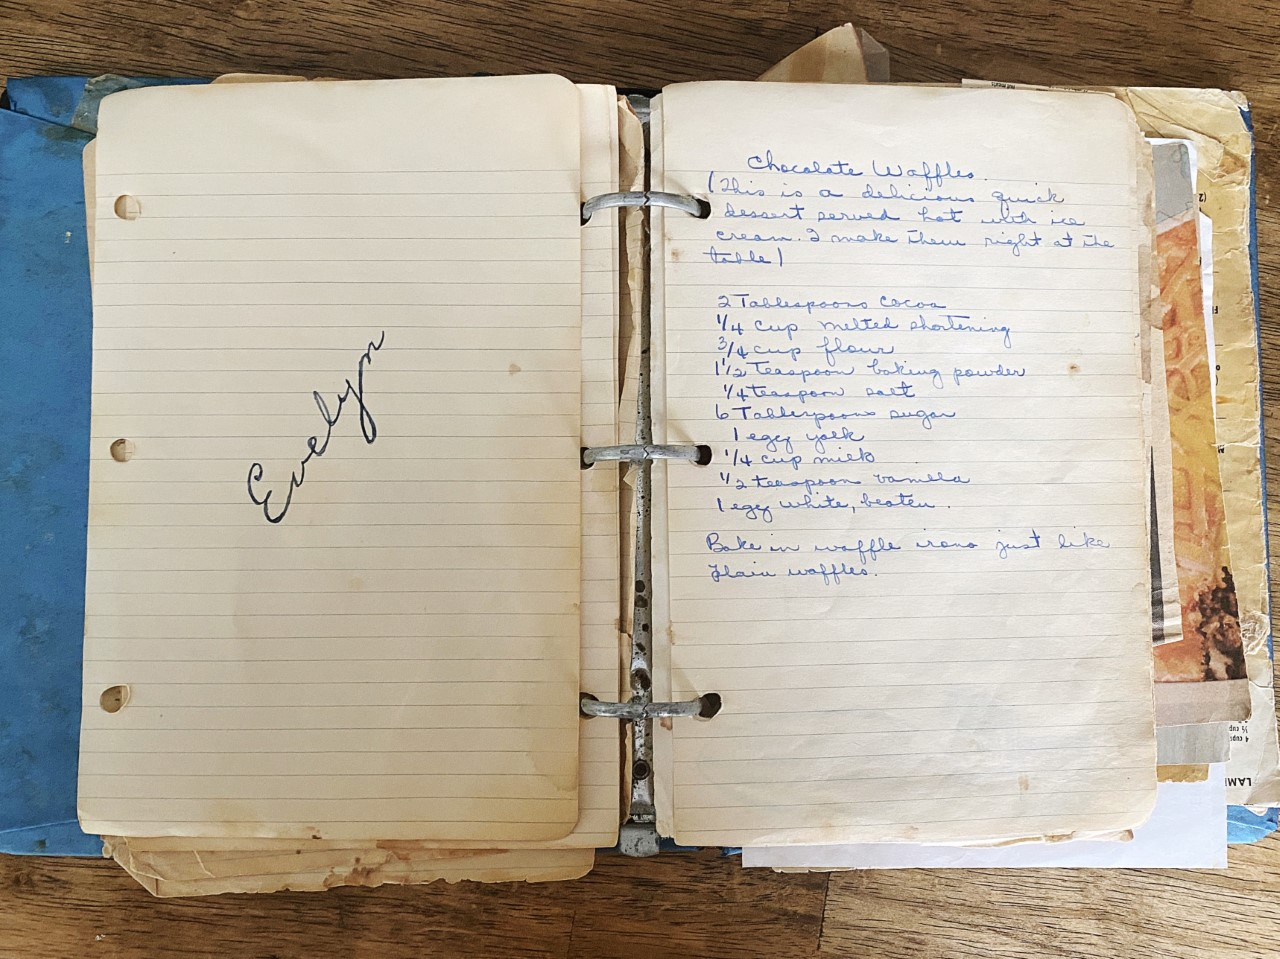 Evelyn recipes